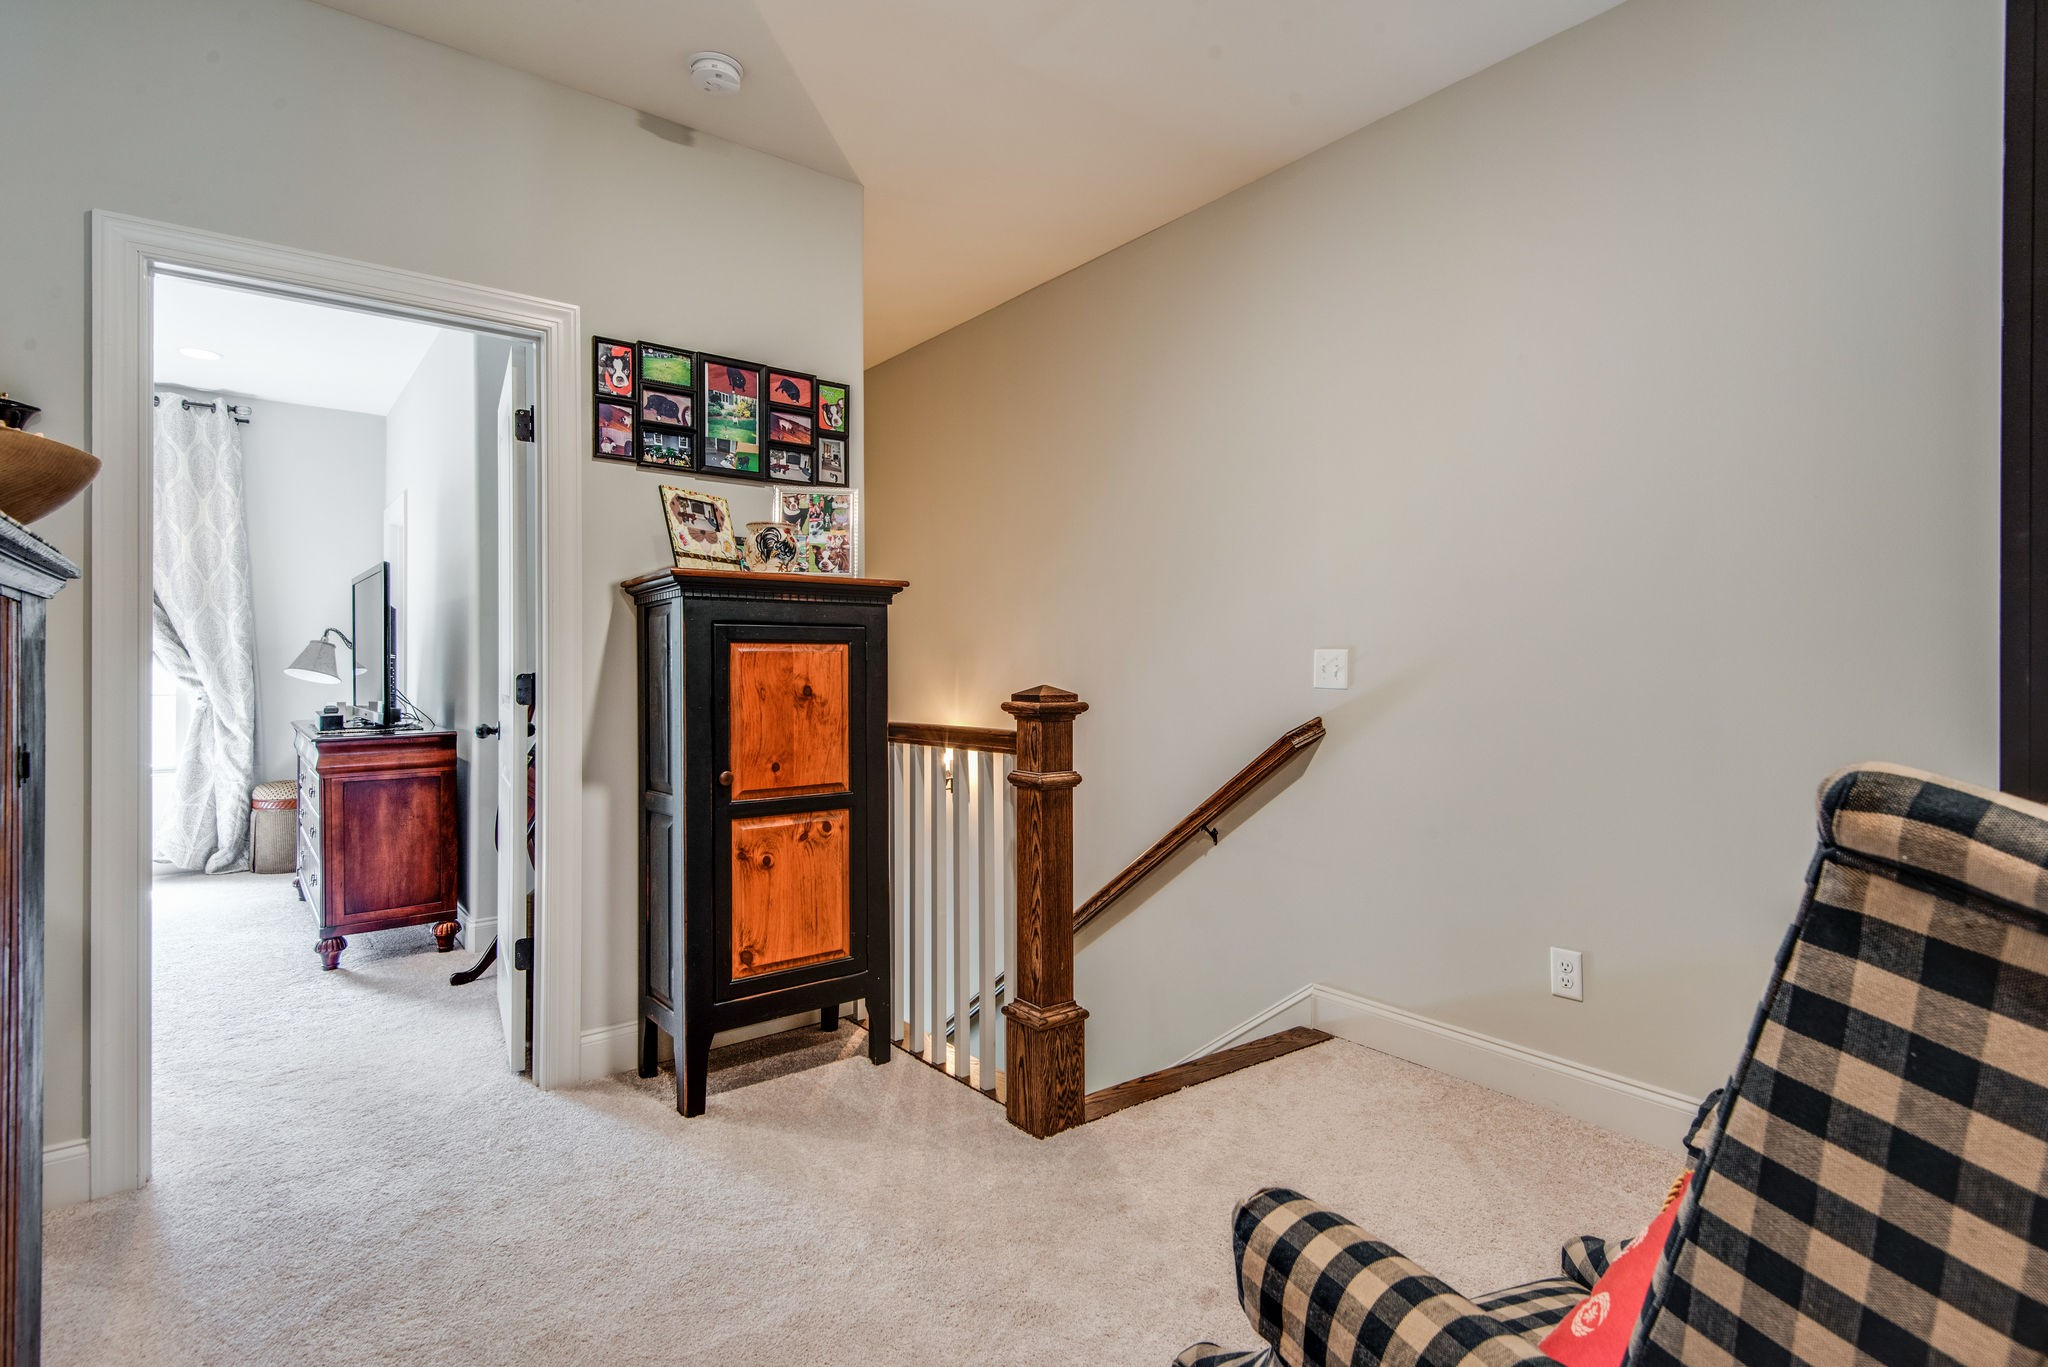 This is a WOW townhome w/tons of extras near downtown Franklin - in Gateway Village walking to  Herban Market and Sopapilla whether you want dinner or pick up groceries! This unit is perfection, custom built in 2019 with 40k in upgrades you have a Chef's Kitchen with quartz counters and open floor plan to Great Room or big Dining Area, Mst. has motorized black-out shades,Mst Bath w/ free-standing tub and jazzy faucet from the wall , sand & finish floors, sec. system, plantation shutters SHARP!